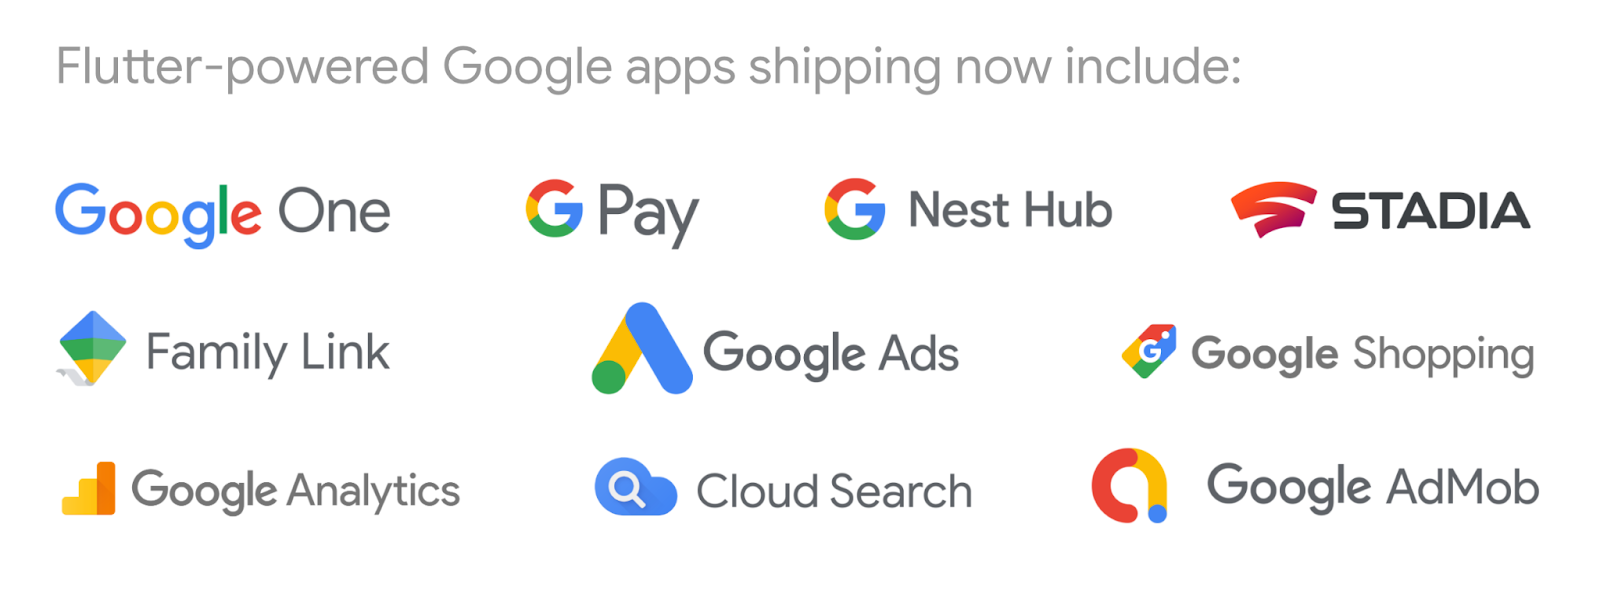 Logos of Google apps powered by Flutter